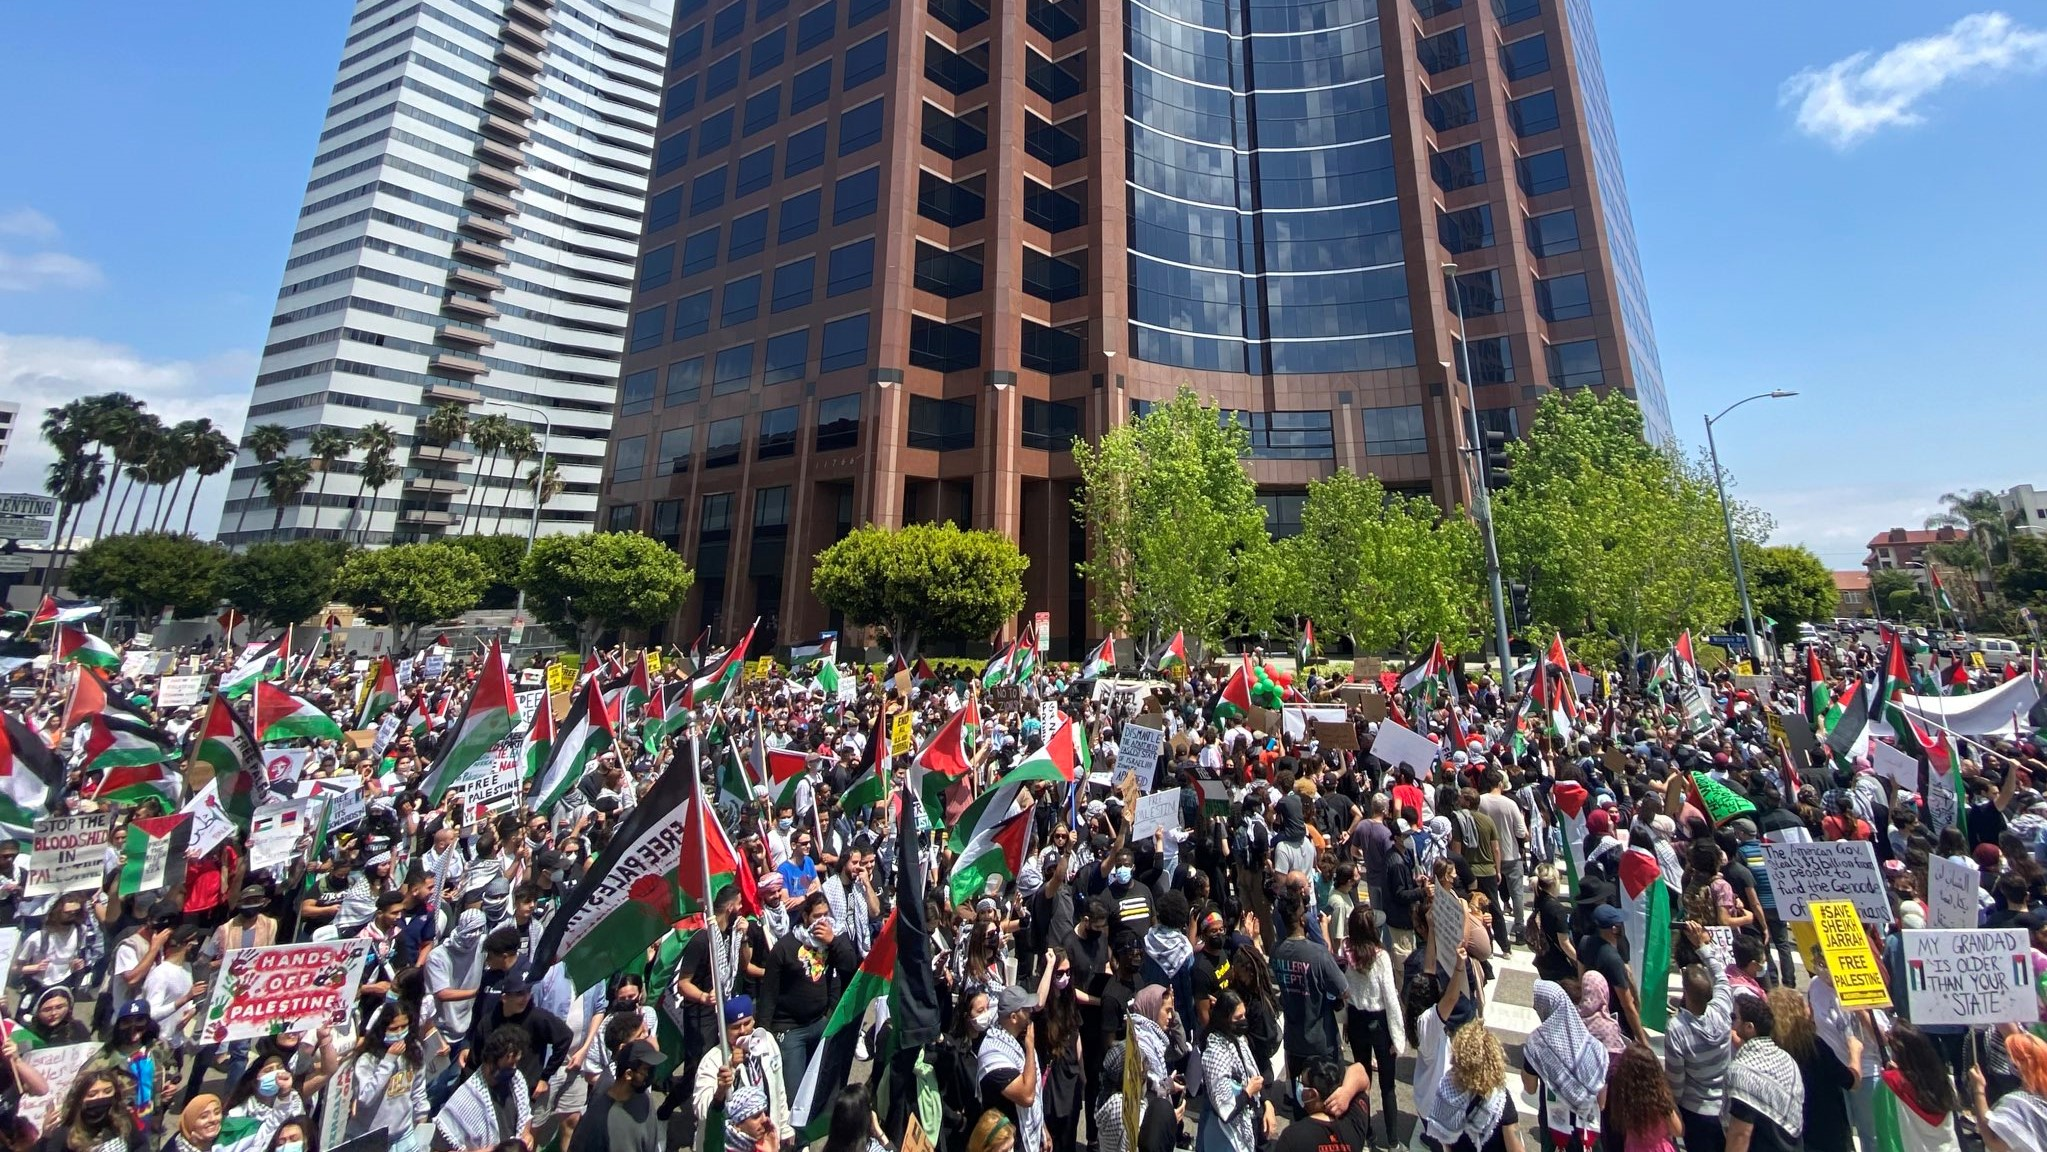 Thousands in Los Angeles Protest in Solidarity With Palestine